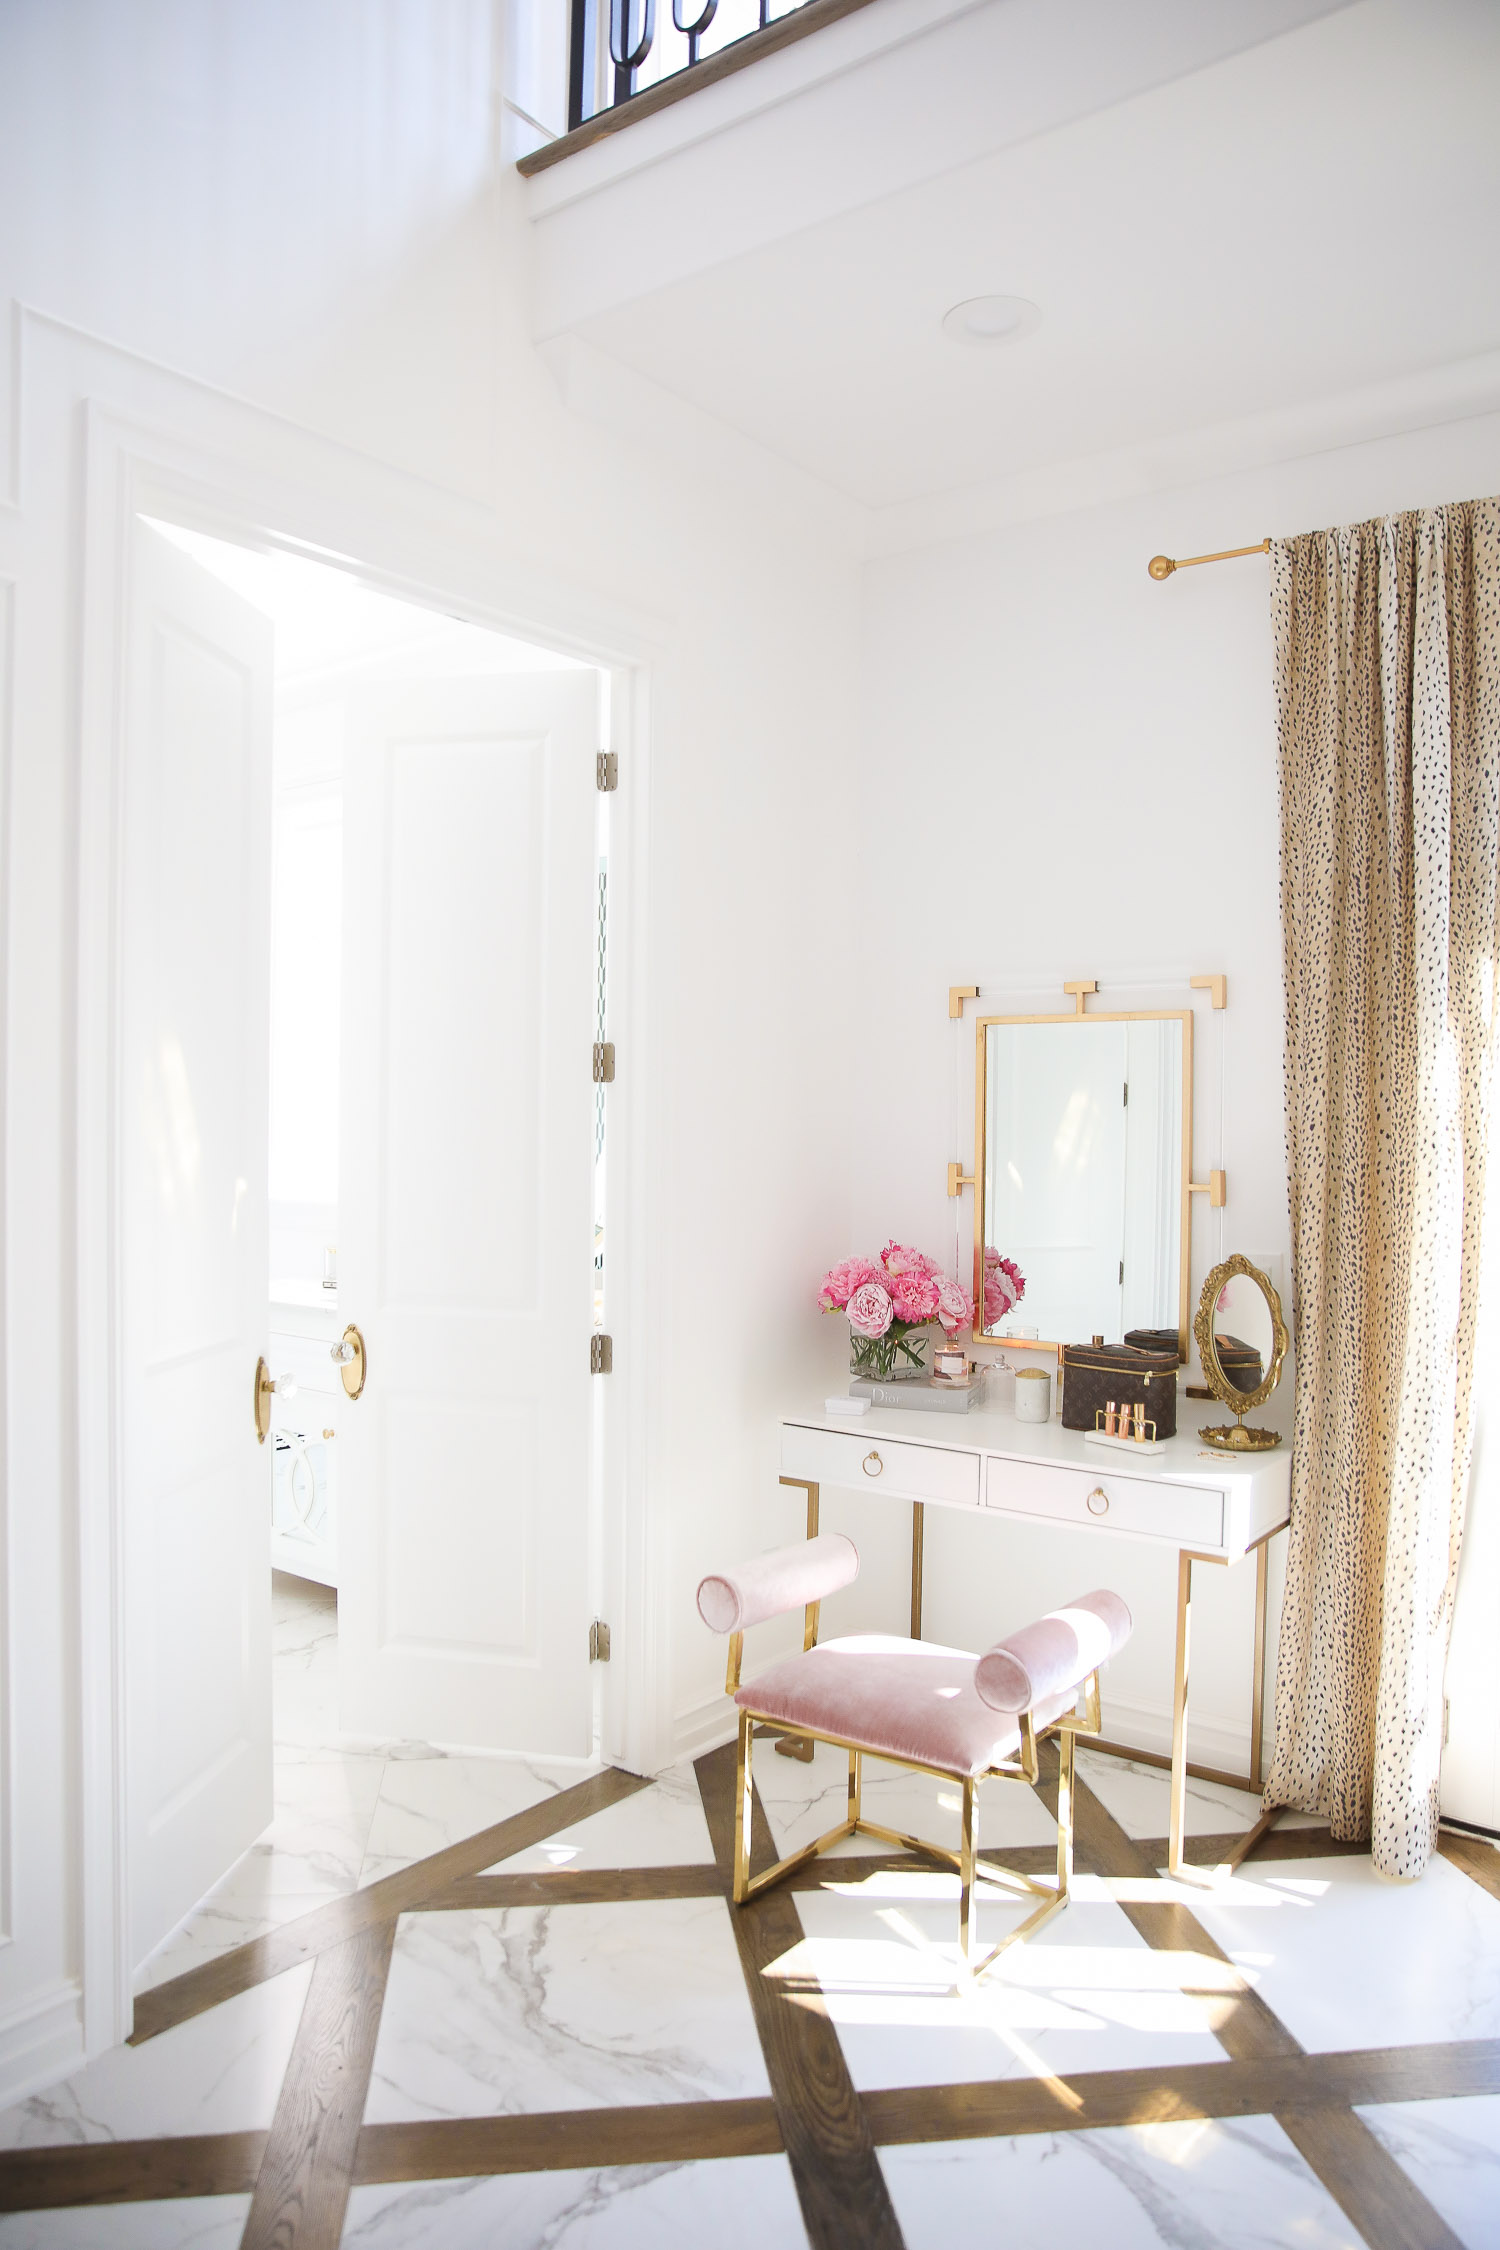 Top Picks by popular US life and style blog, The Sweetest Thing: image of a two story closet with marble and wood flooring, antelope print drapes, gold curtain rod, and a white and gold vanity with a pink velvet bench and gold and acrylic mirror.